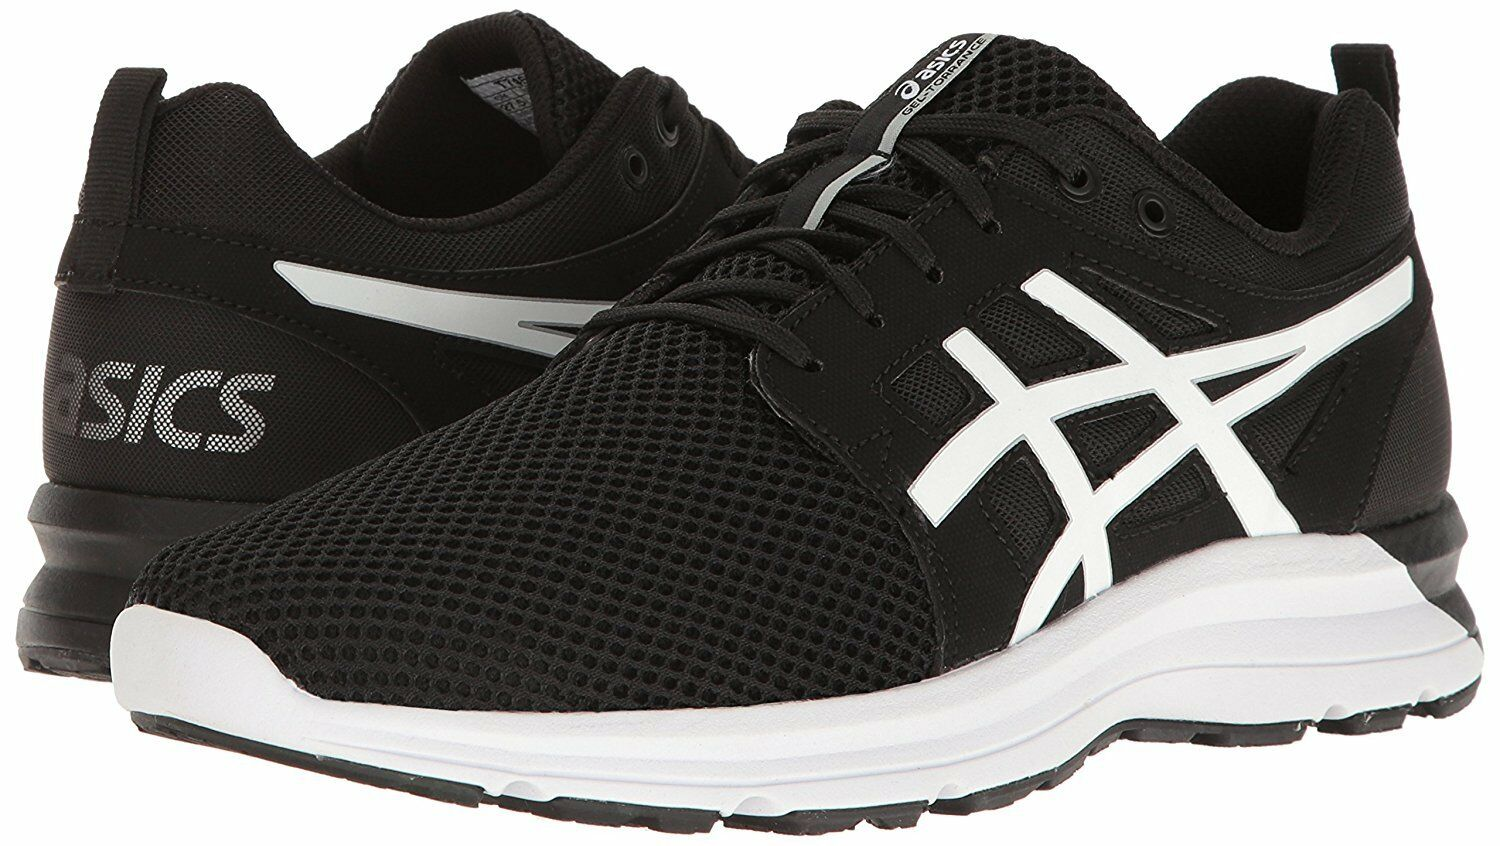 Asics Mens  Gel -Torrance gym running casual shoes  Trainers Black White Silver